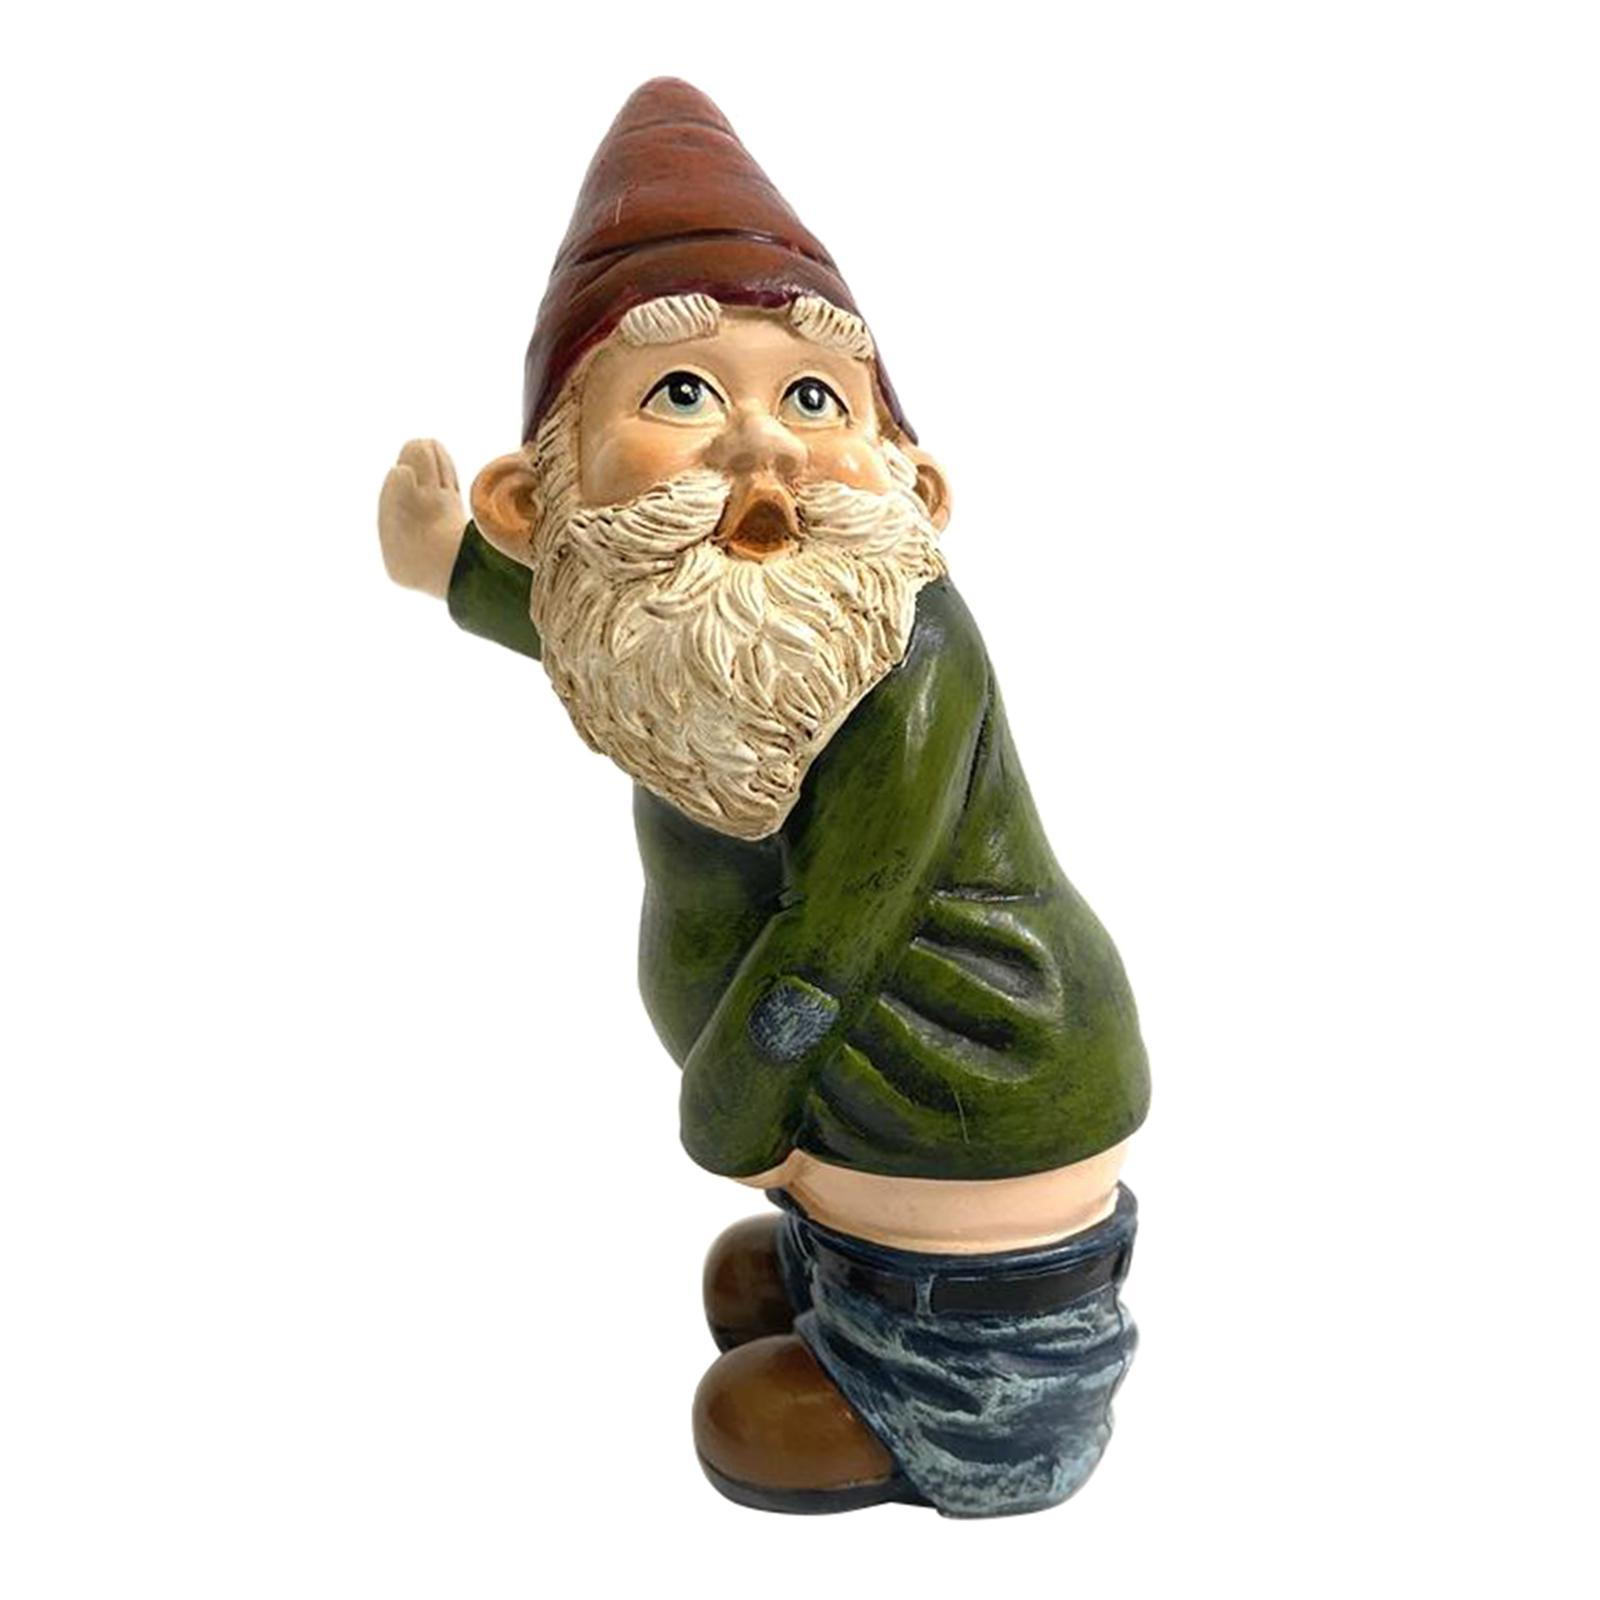 thumbnail 3 - Funny Resin Naughty Garden Gnome Statue Ornaments Villa Home Figurines